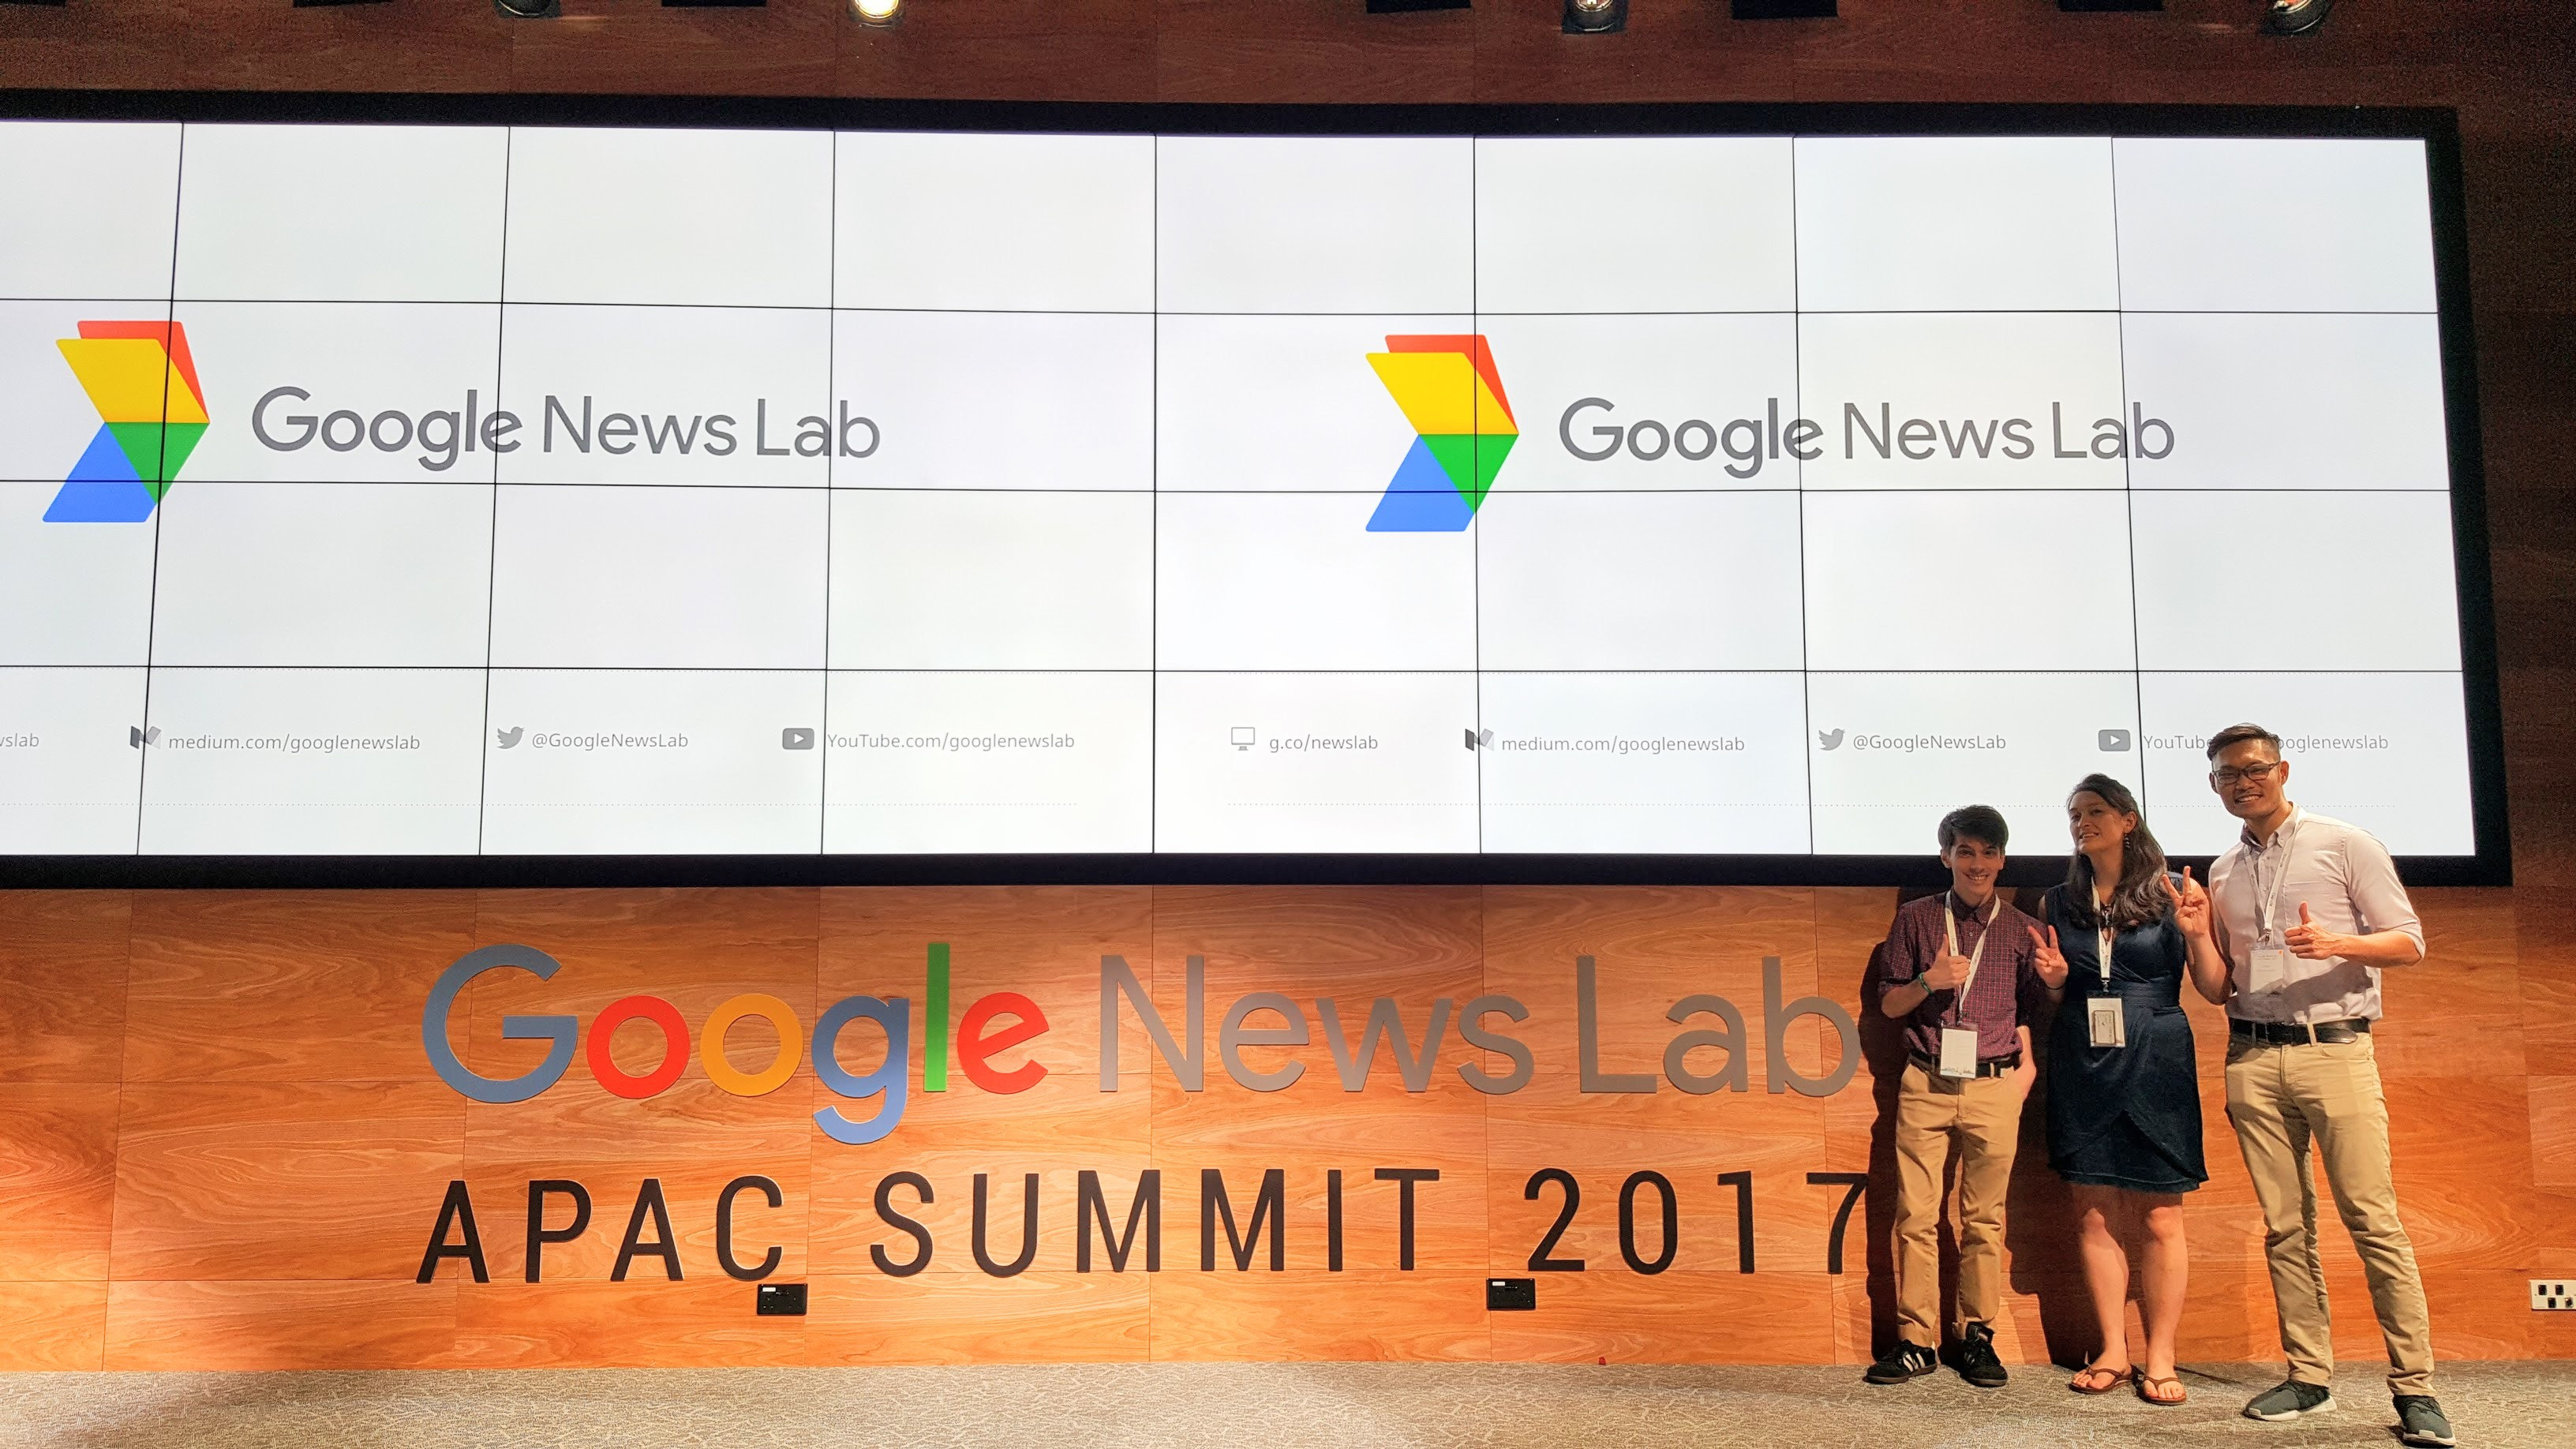 Whirlwind recap of Google News Lab Summit APAC 2017